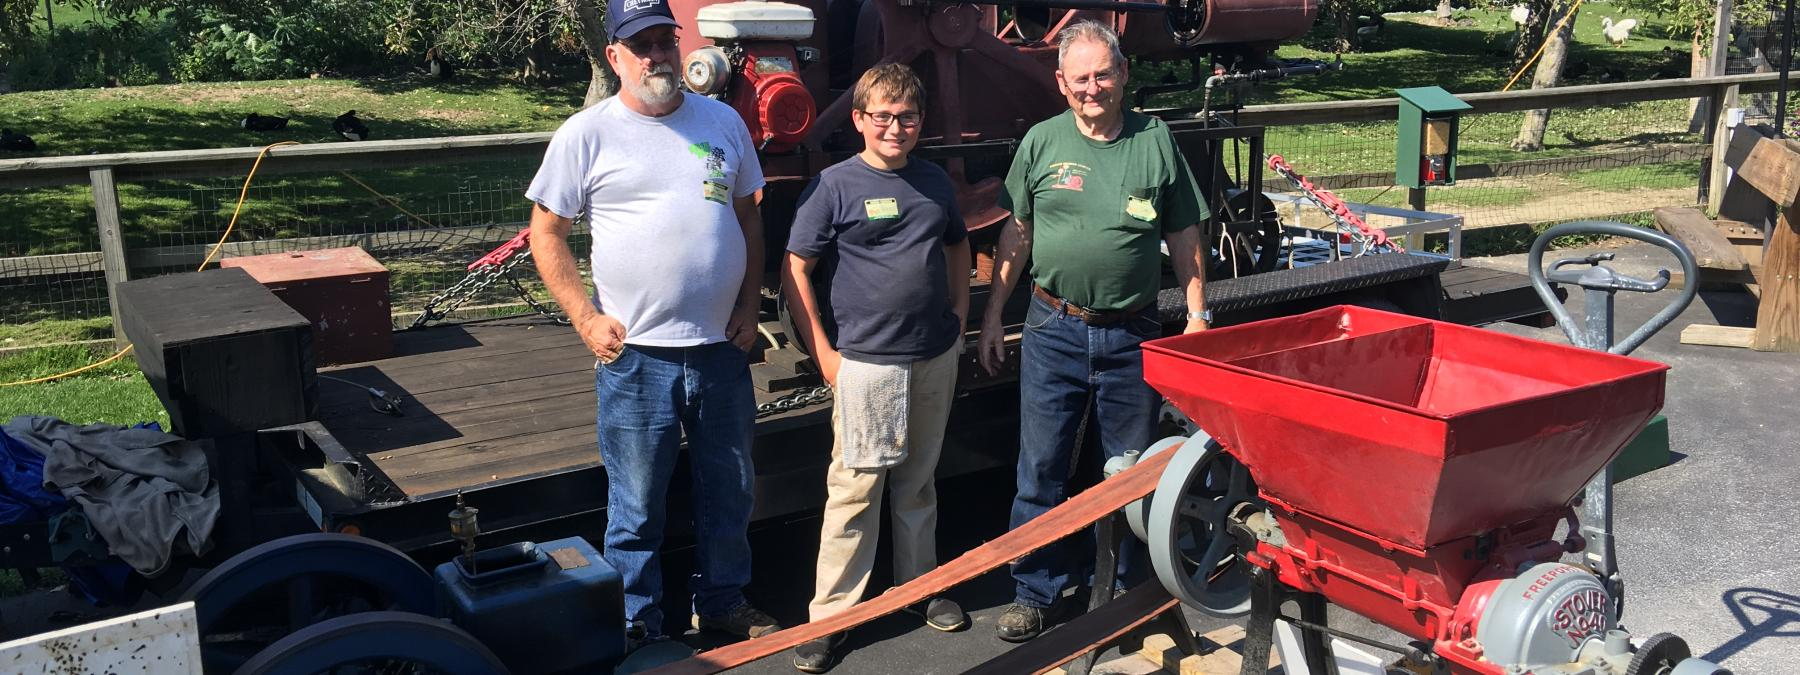 Antique Engine Show in Late August